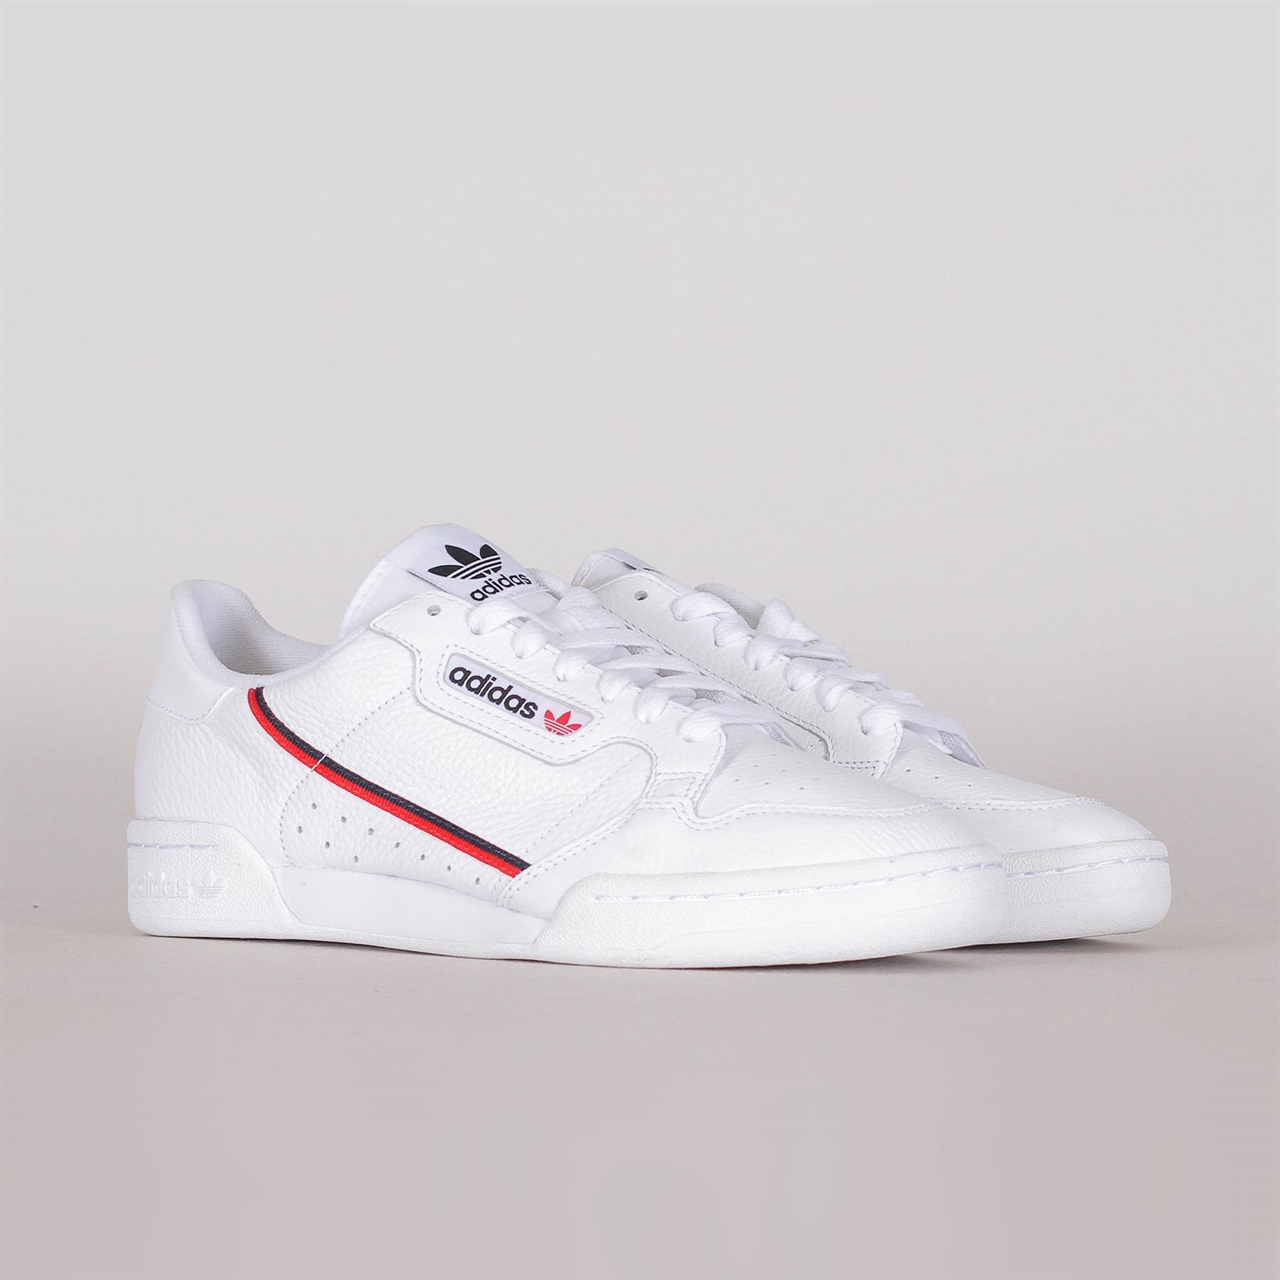 6306395a0195 Continental 80 (G27706). 99 99EUR   a pair. Colorway  Footwear White Scarlet  Navy